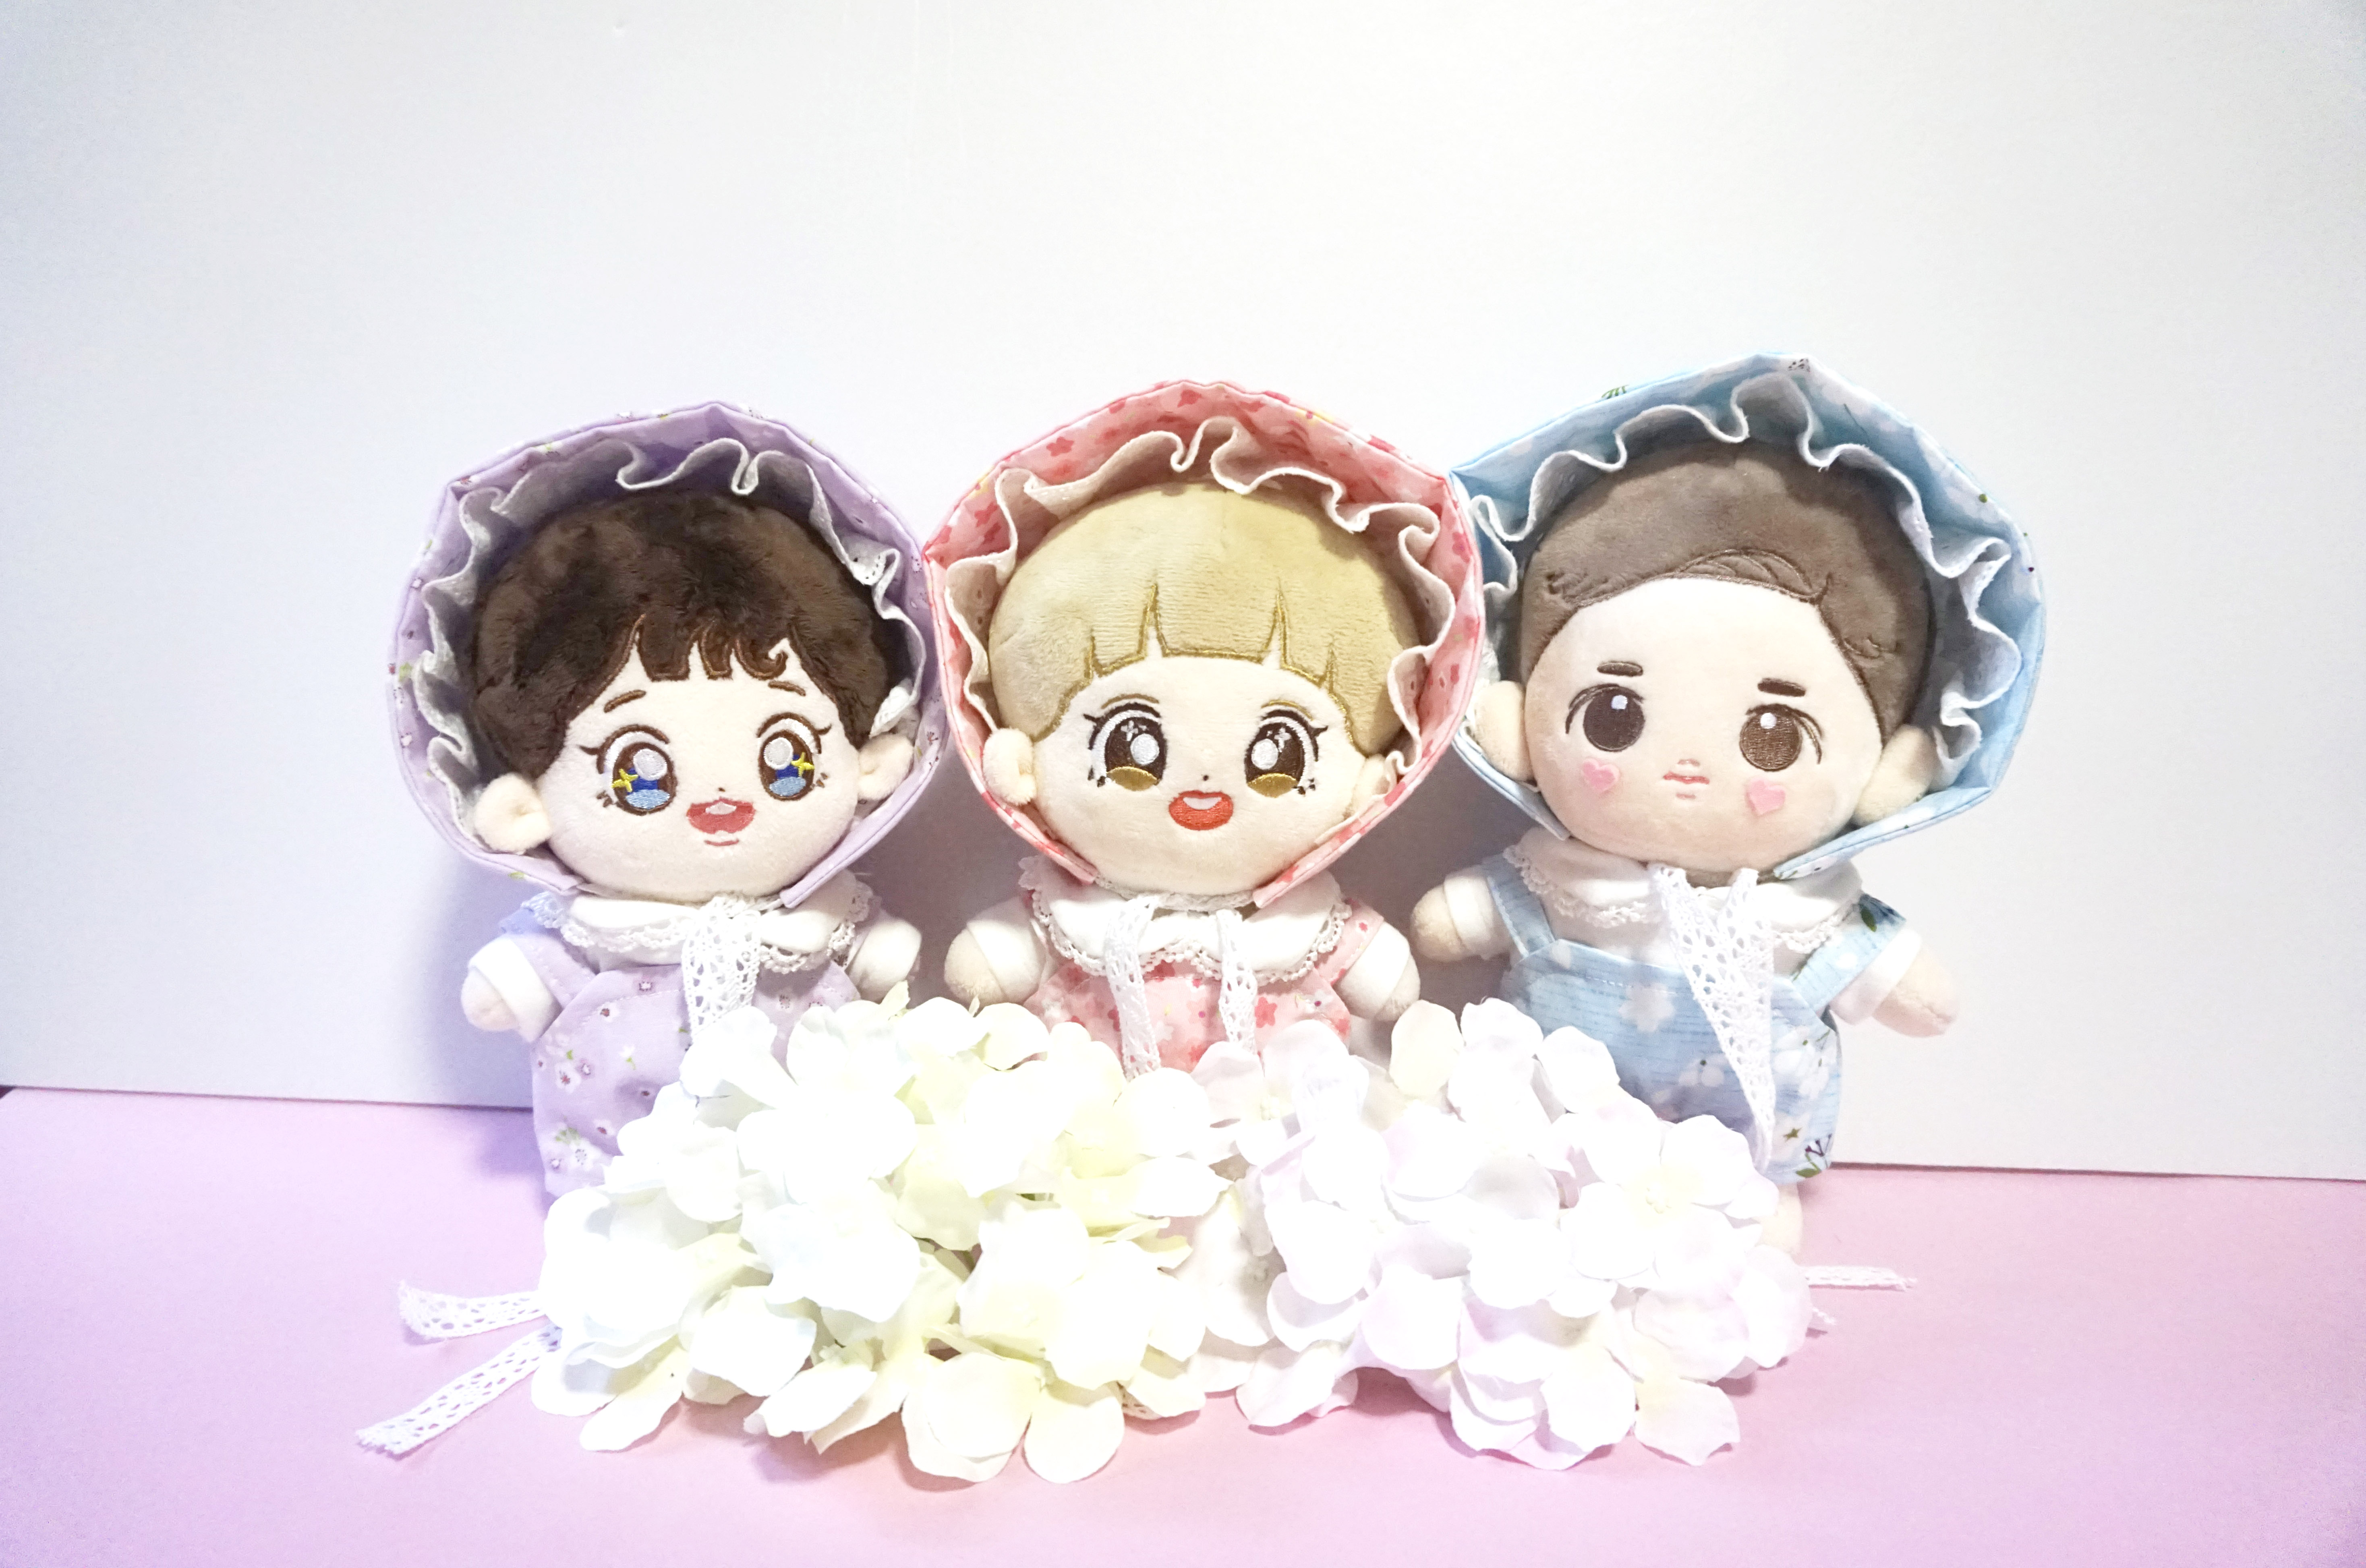 цены [MYKPOP]EXO Floral Print Lace Hood & Romper Sets for Doll of 20cm CHANYEOL BAEKHYUN SUHO KPOP Fans Collection SA18092801